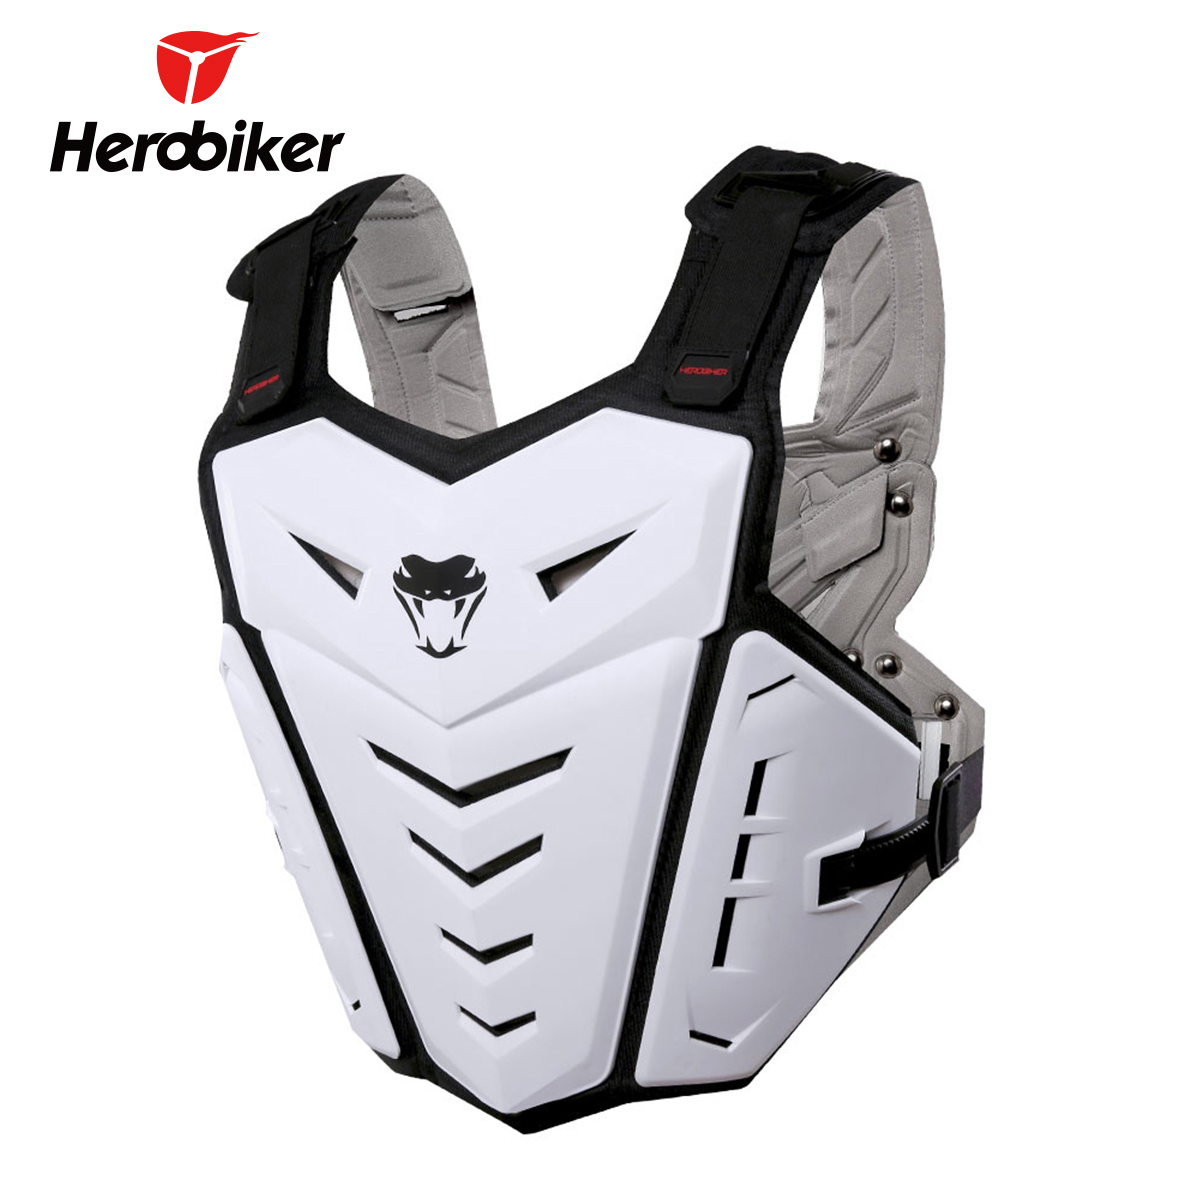 HEROBIKER Motorcycle Armor Motorcycle Vest Motocross Moto Vest Men Women Back Chest Protector Guards Body Armor Protective Gear herobiker armor removable neck protection guards riding skating motorcycle racing protective gear full body armor protectors